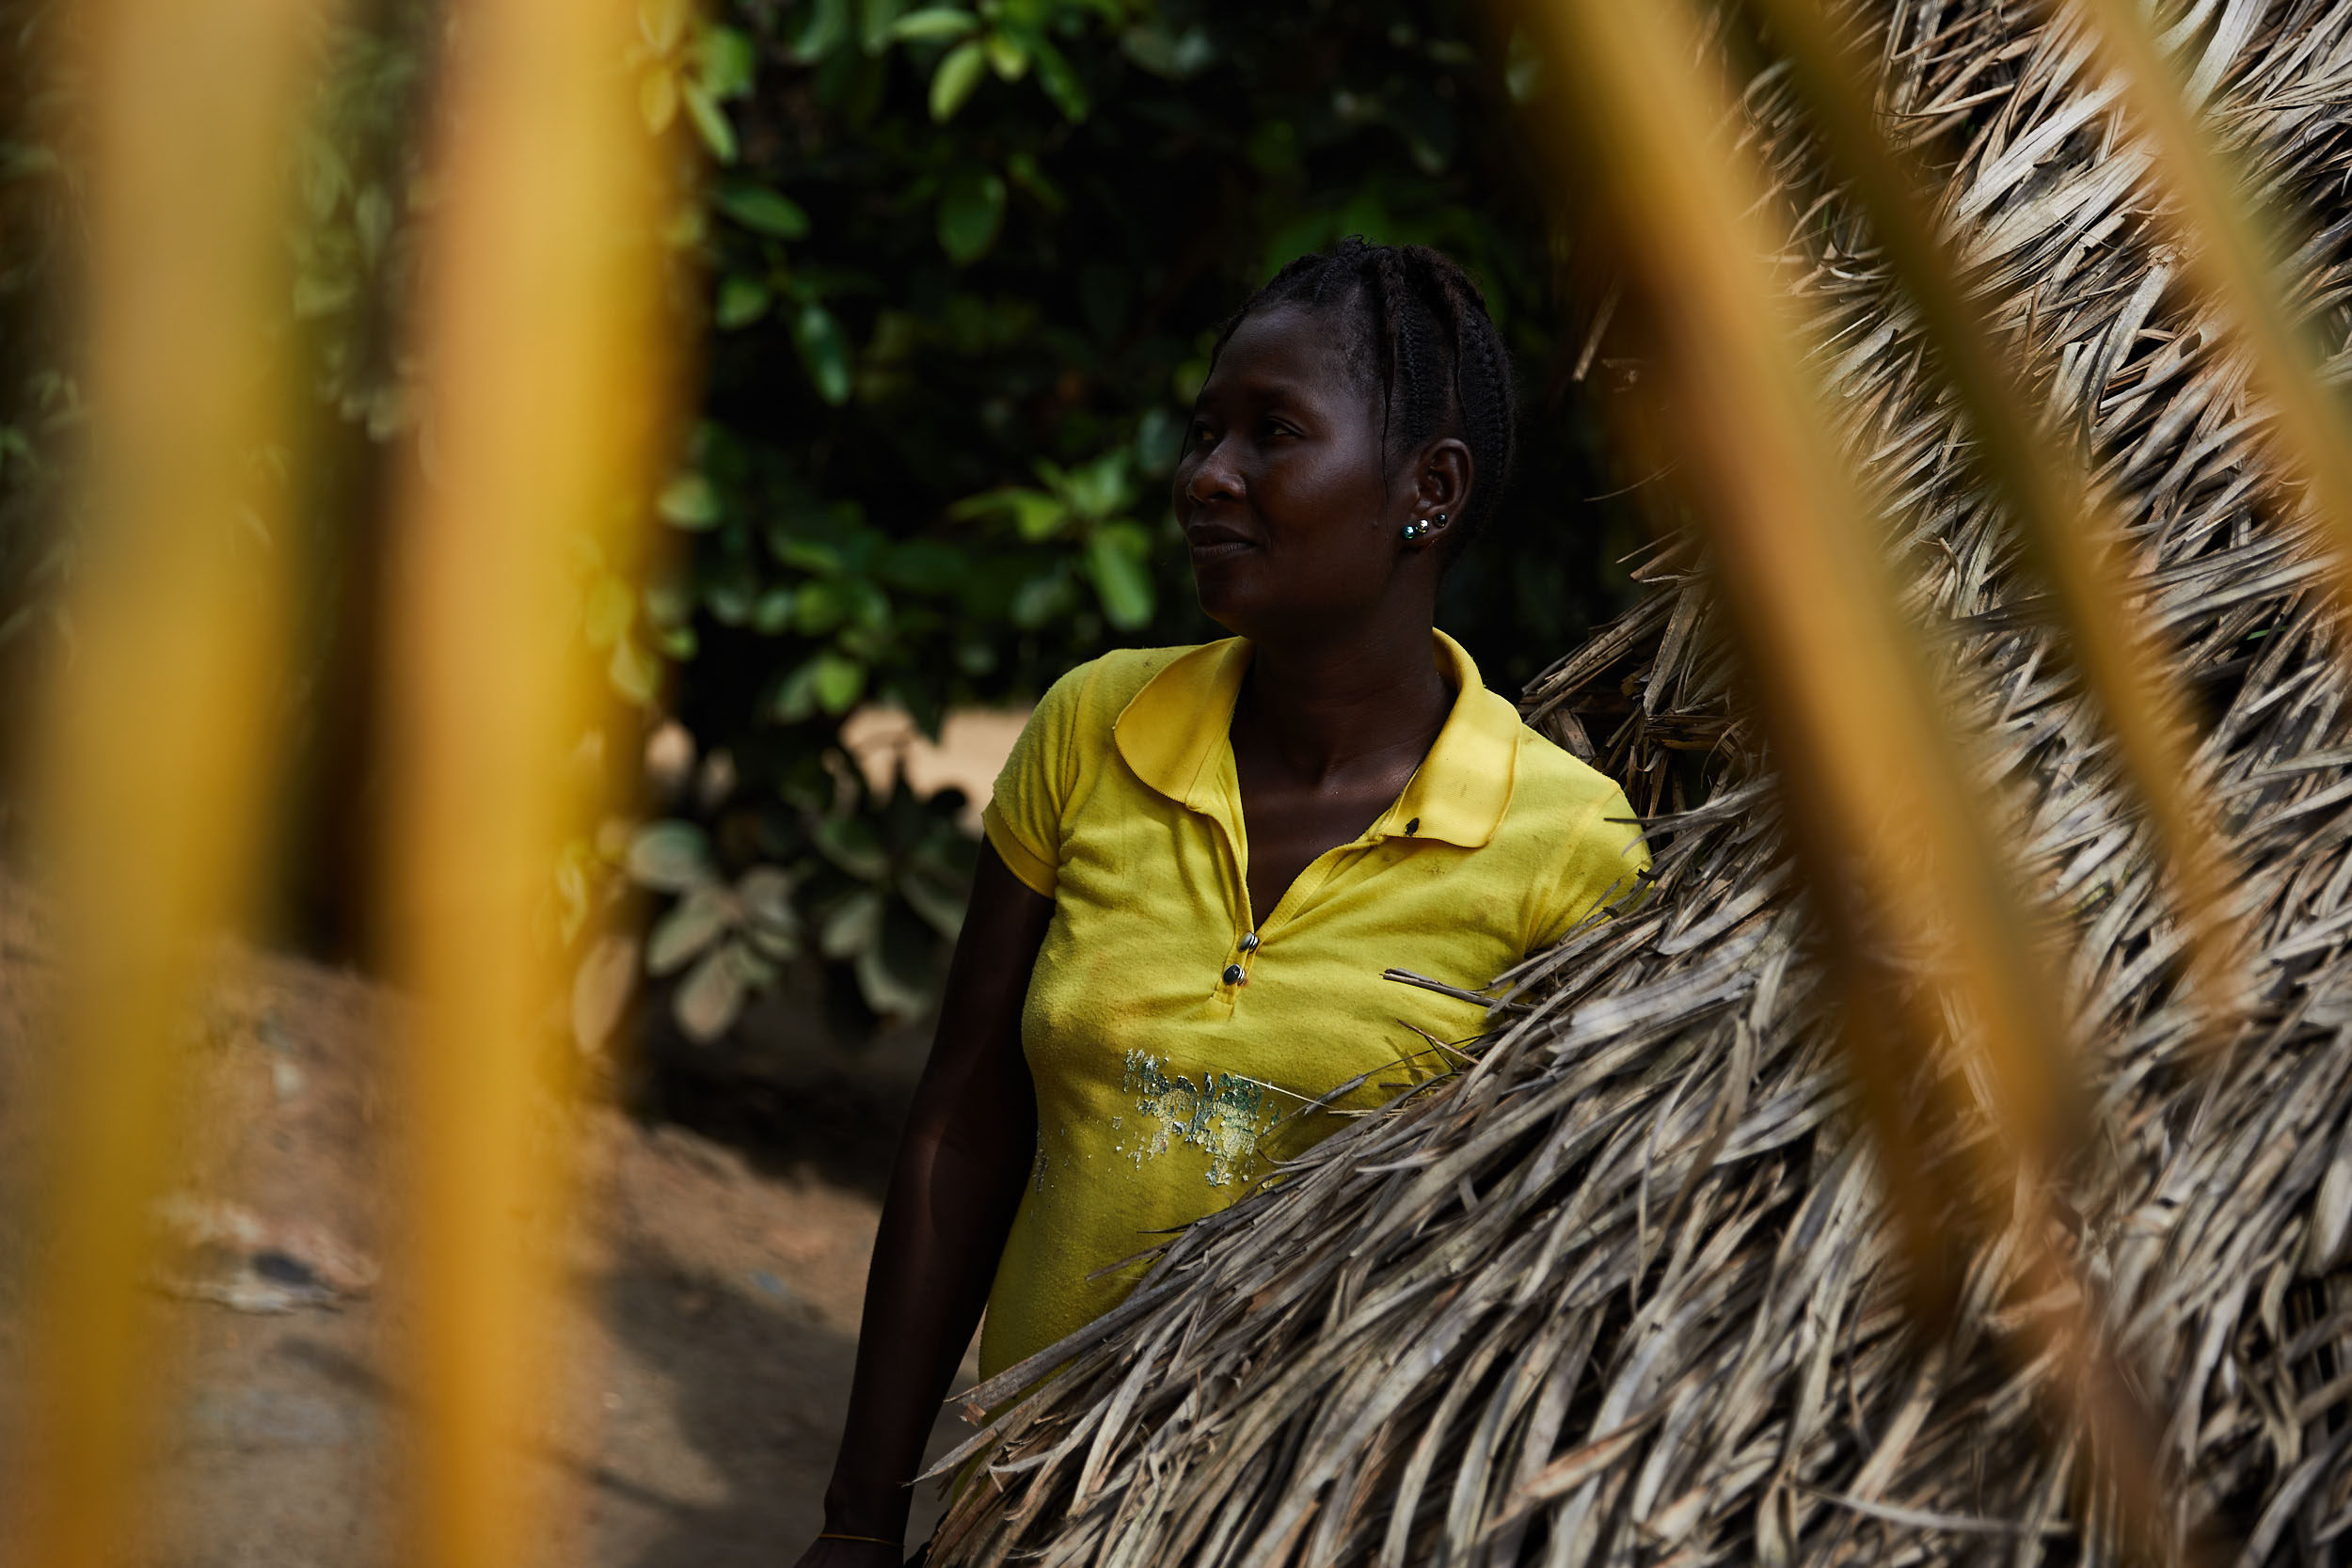 Tannah contracted Ebola and survived but lost 6 members of her family including her son. She makes a living as a farmer in Mawah, Liberia, which lost 39 of its residents to Ebola.